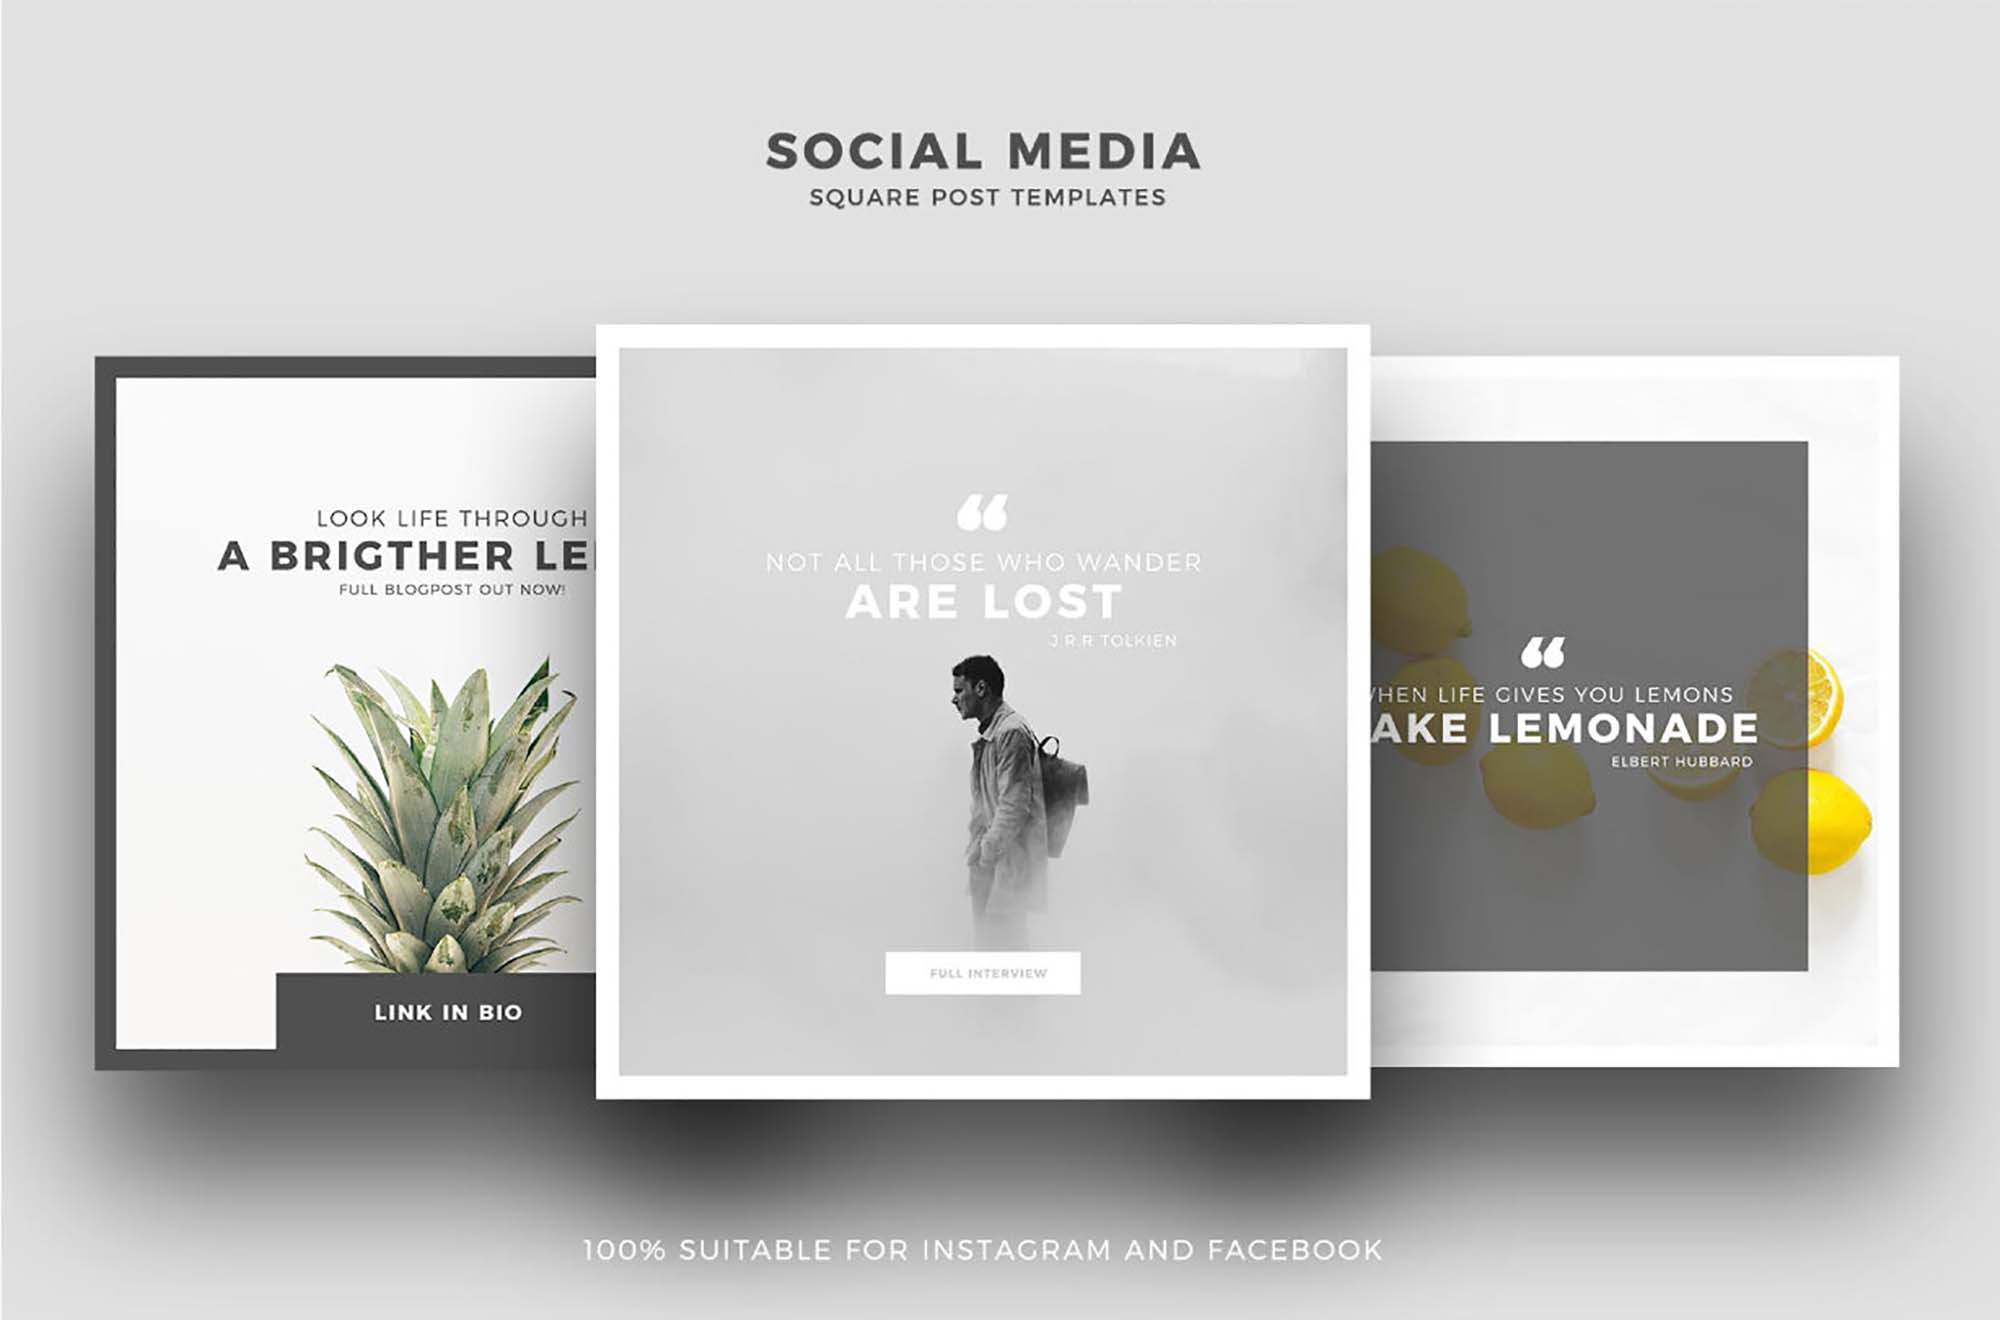 Minimis Instagram Social Media Templates 2